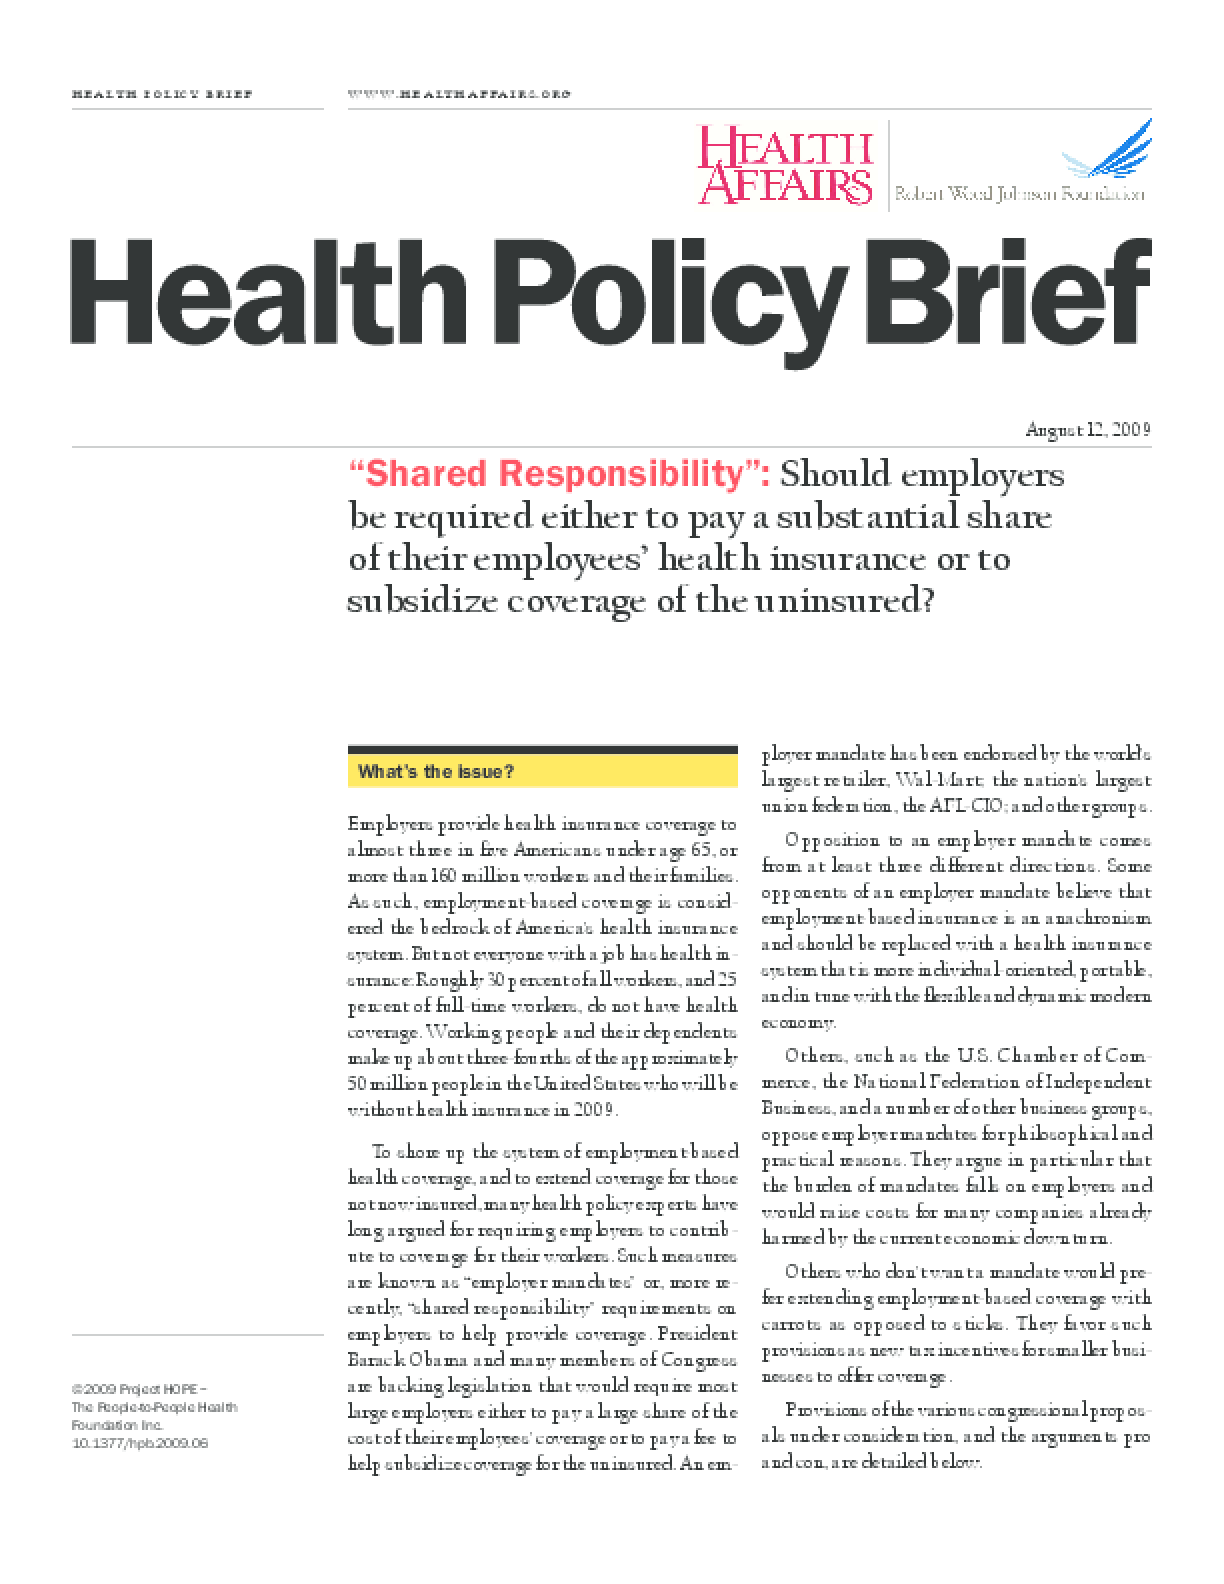 Health Affairs/RWJF Policy Brief: Shared Responsibility